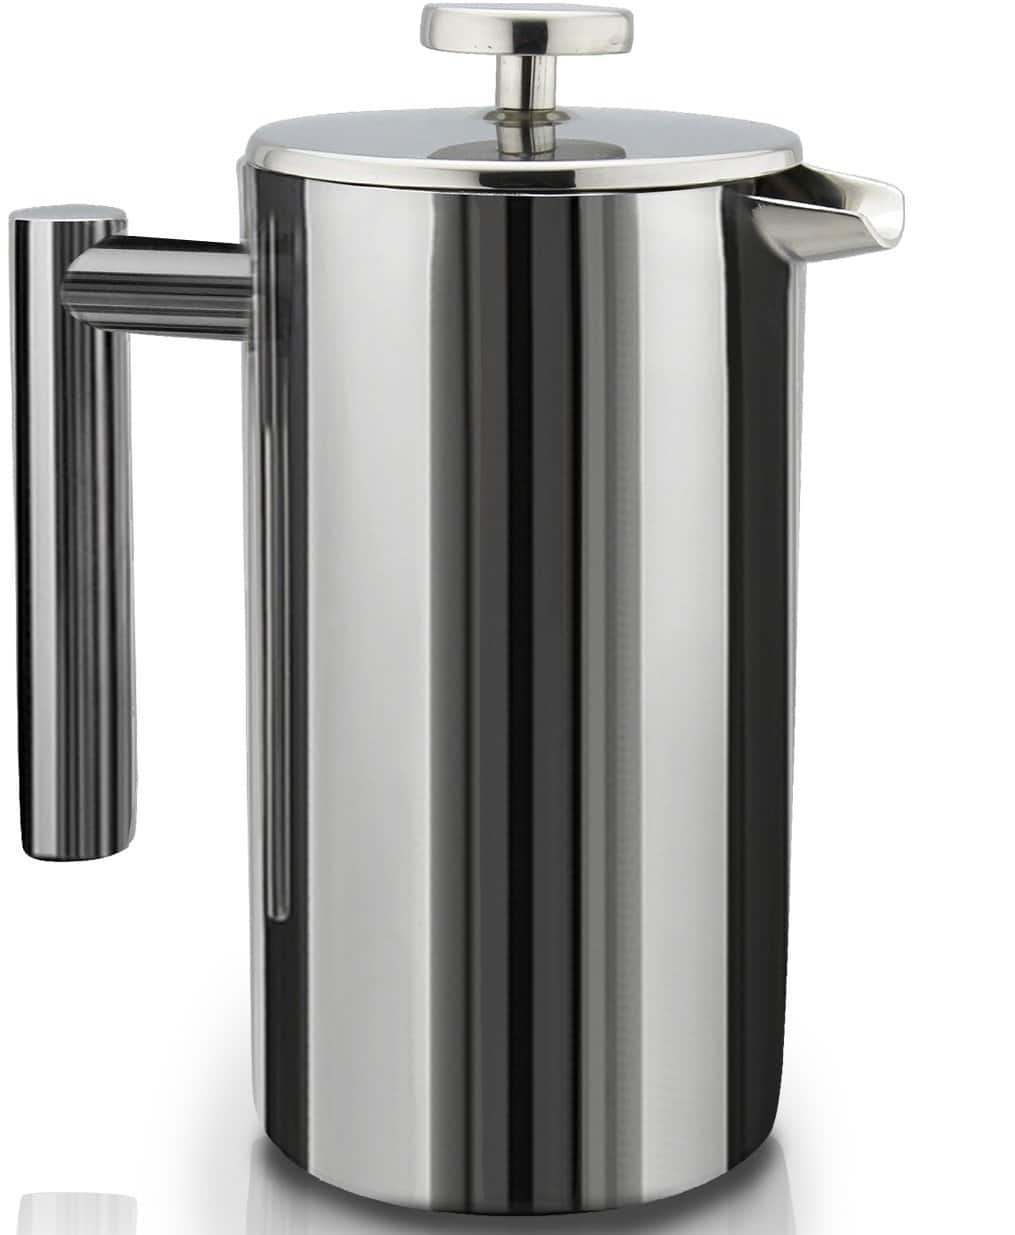 SterlingPro Double Wall Stainless Steel French Coffee Press, 1 Liter for $9.95!!! F/S with Amazon Prime!! Originally $46.85